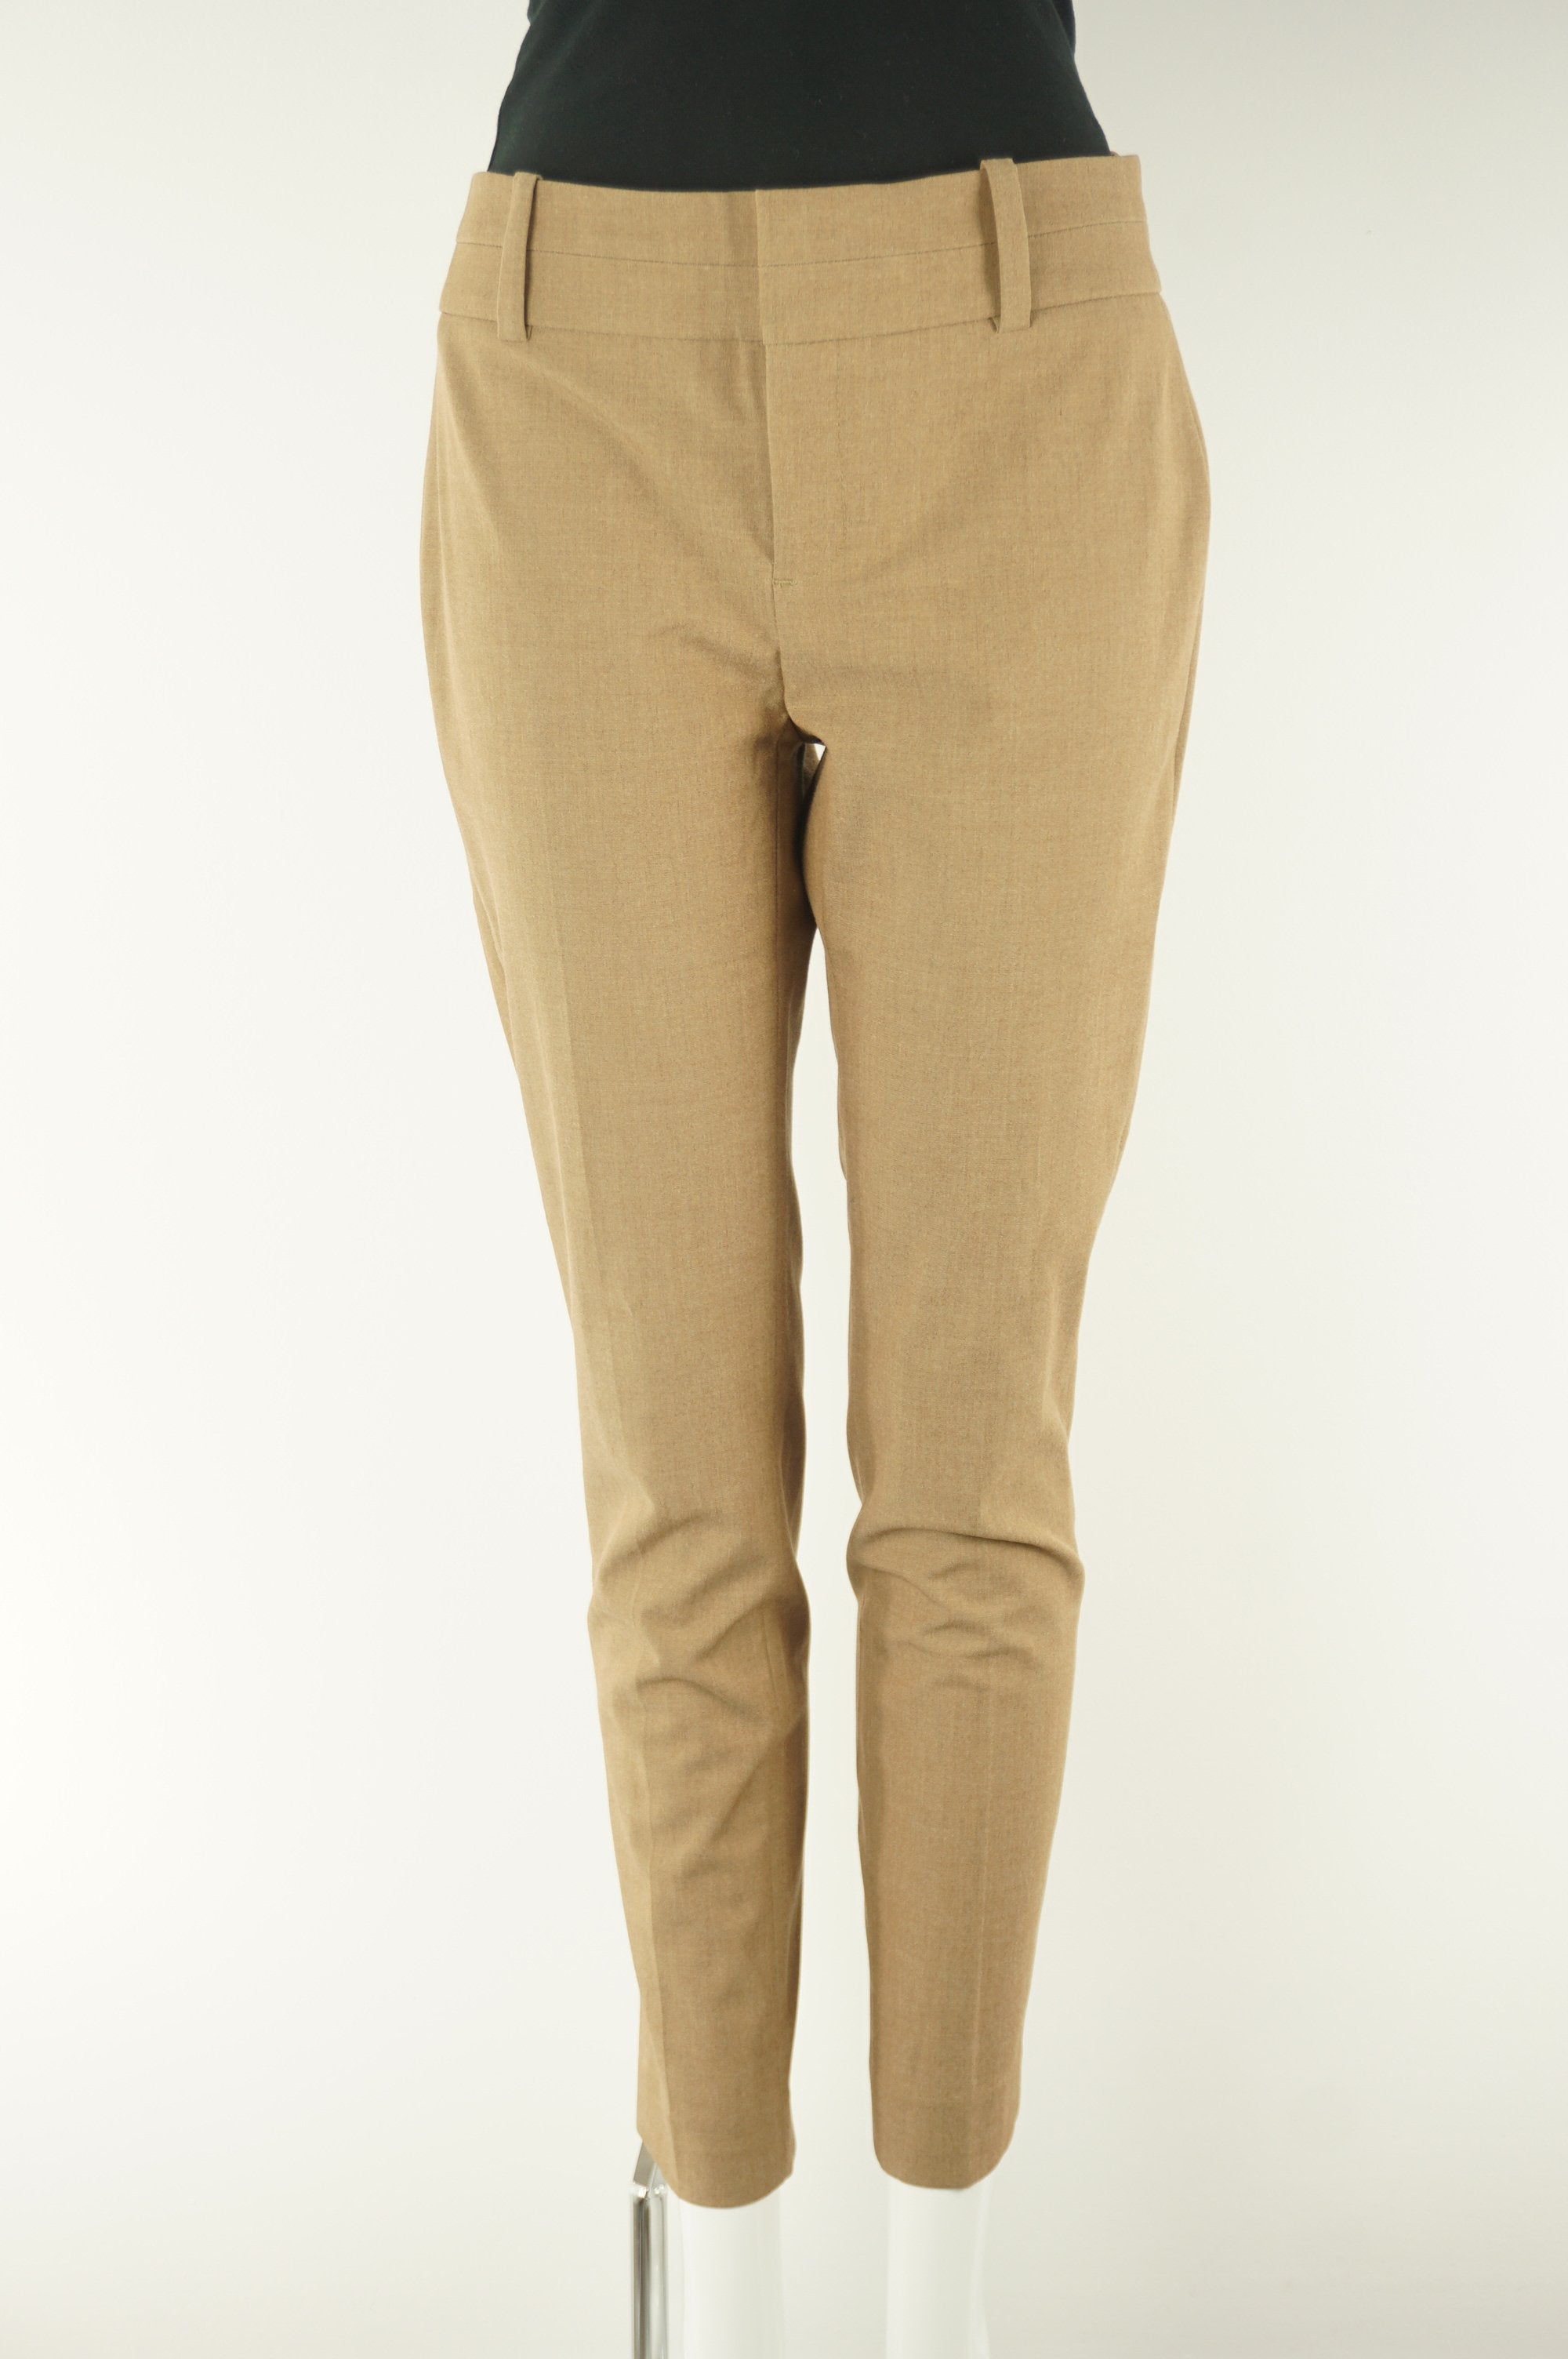 Calvin Klein Stretchy Dress Pants, A clean and professional pair of pants for the best boardroom impresseion (not that you need it, cuz you are killing it already). Not to mention the comfortableness provided by the stretchy fabric. , Brown, 67% Polyester, 29% Rayon, 4% Elastane, women's Pants & Shorts, women's Brown Pants & Shorts, Calvin Klein women's Pants & Shorts, comfortable women's dress pants, women's professional pants